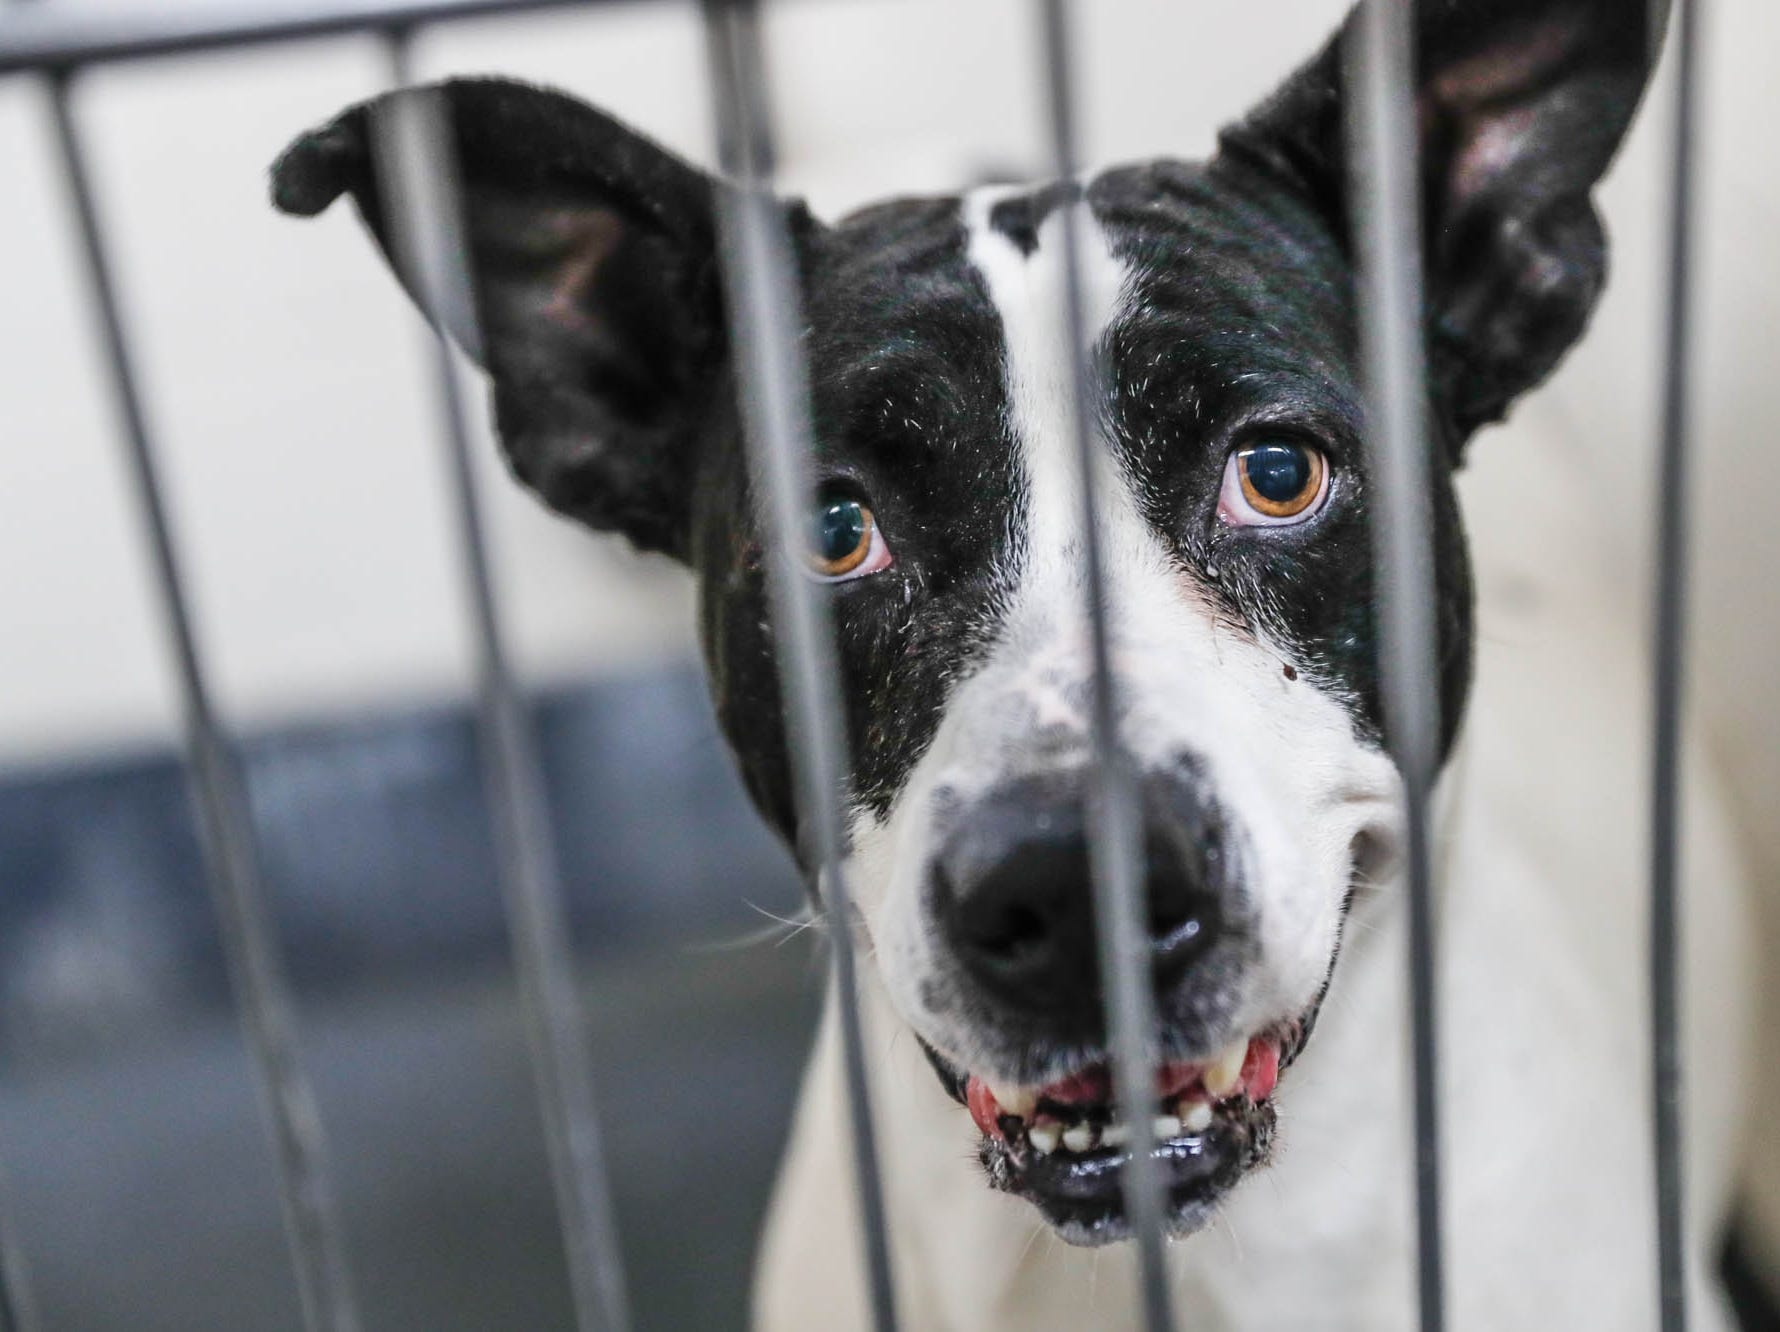 Smirky Turkey is a five-year-old male black and white pit bull terrier mix and is waiting on a forever home at Indianapolis, Animal Care Services, 2600 S Harding St, on Sunday, Jan. 27, 2019.